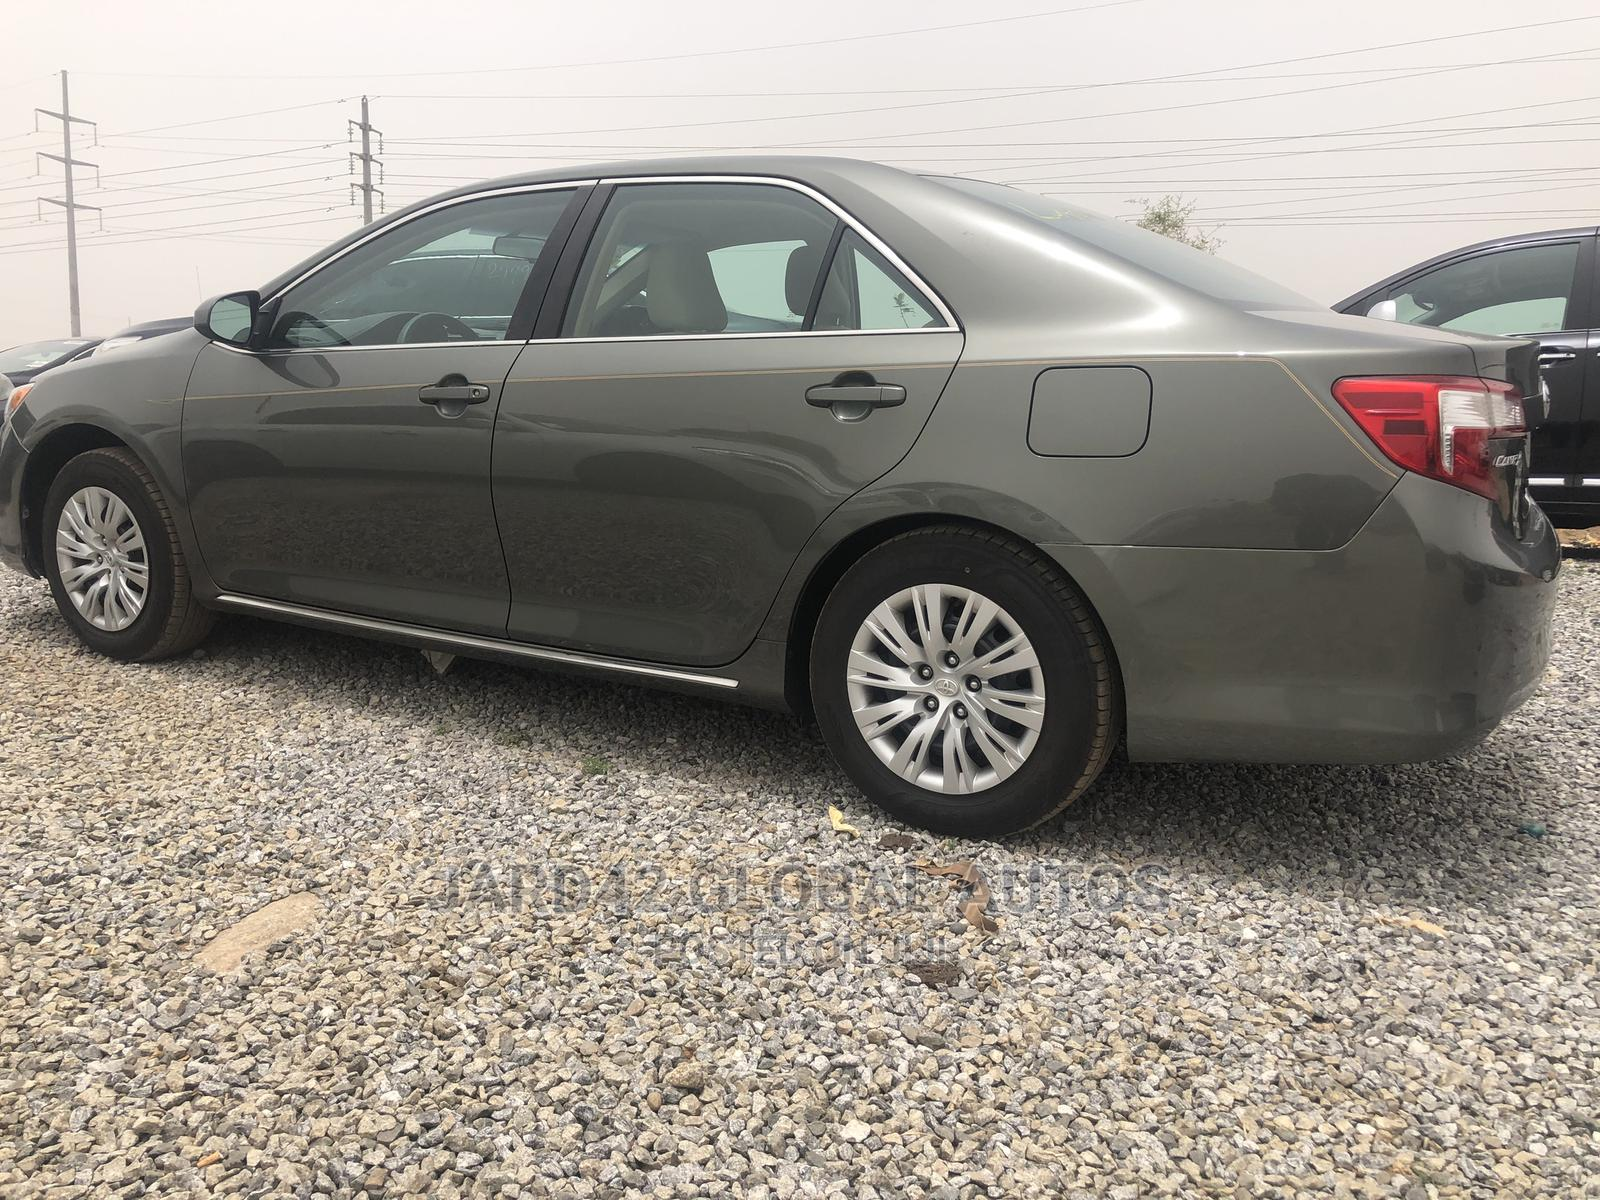 Toyota Camry 2012 Green | Cars for sale in Lugbe District, Abuja (FCT) State, Nigeria